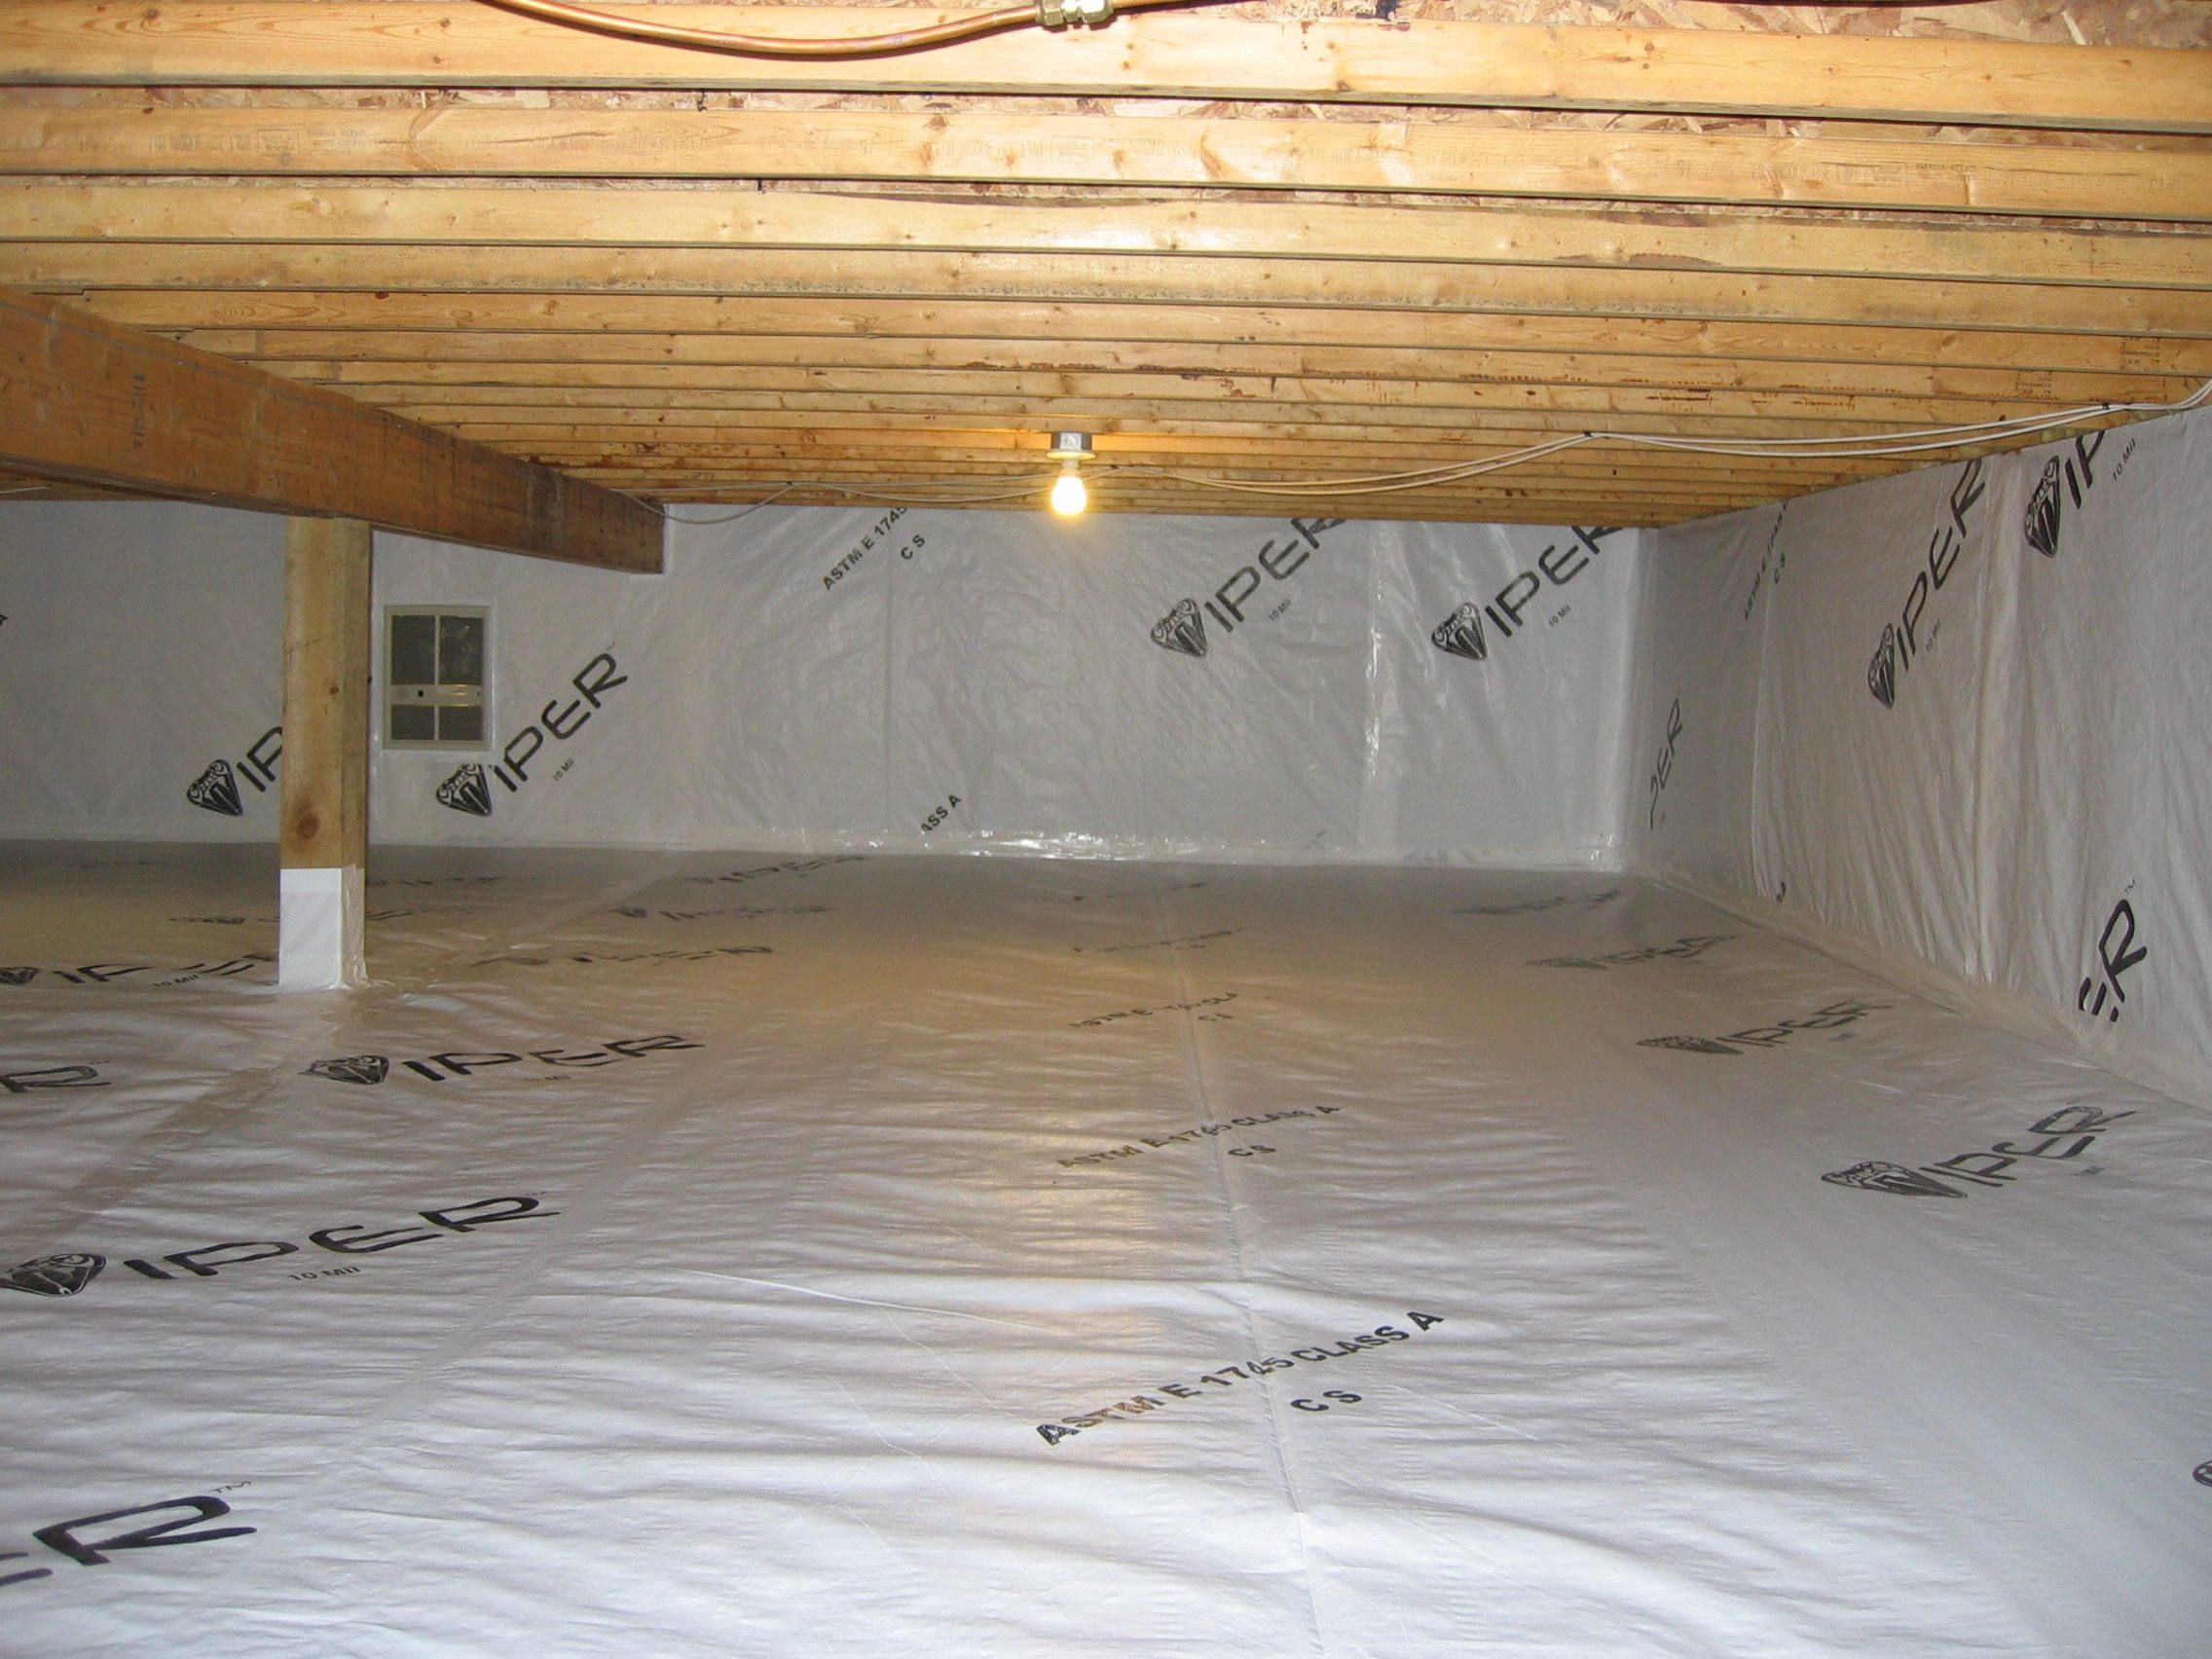 Viper cs is a vapor barrier designed specifically for for Slab foundation vs crawl space